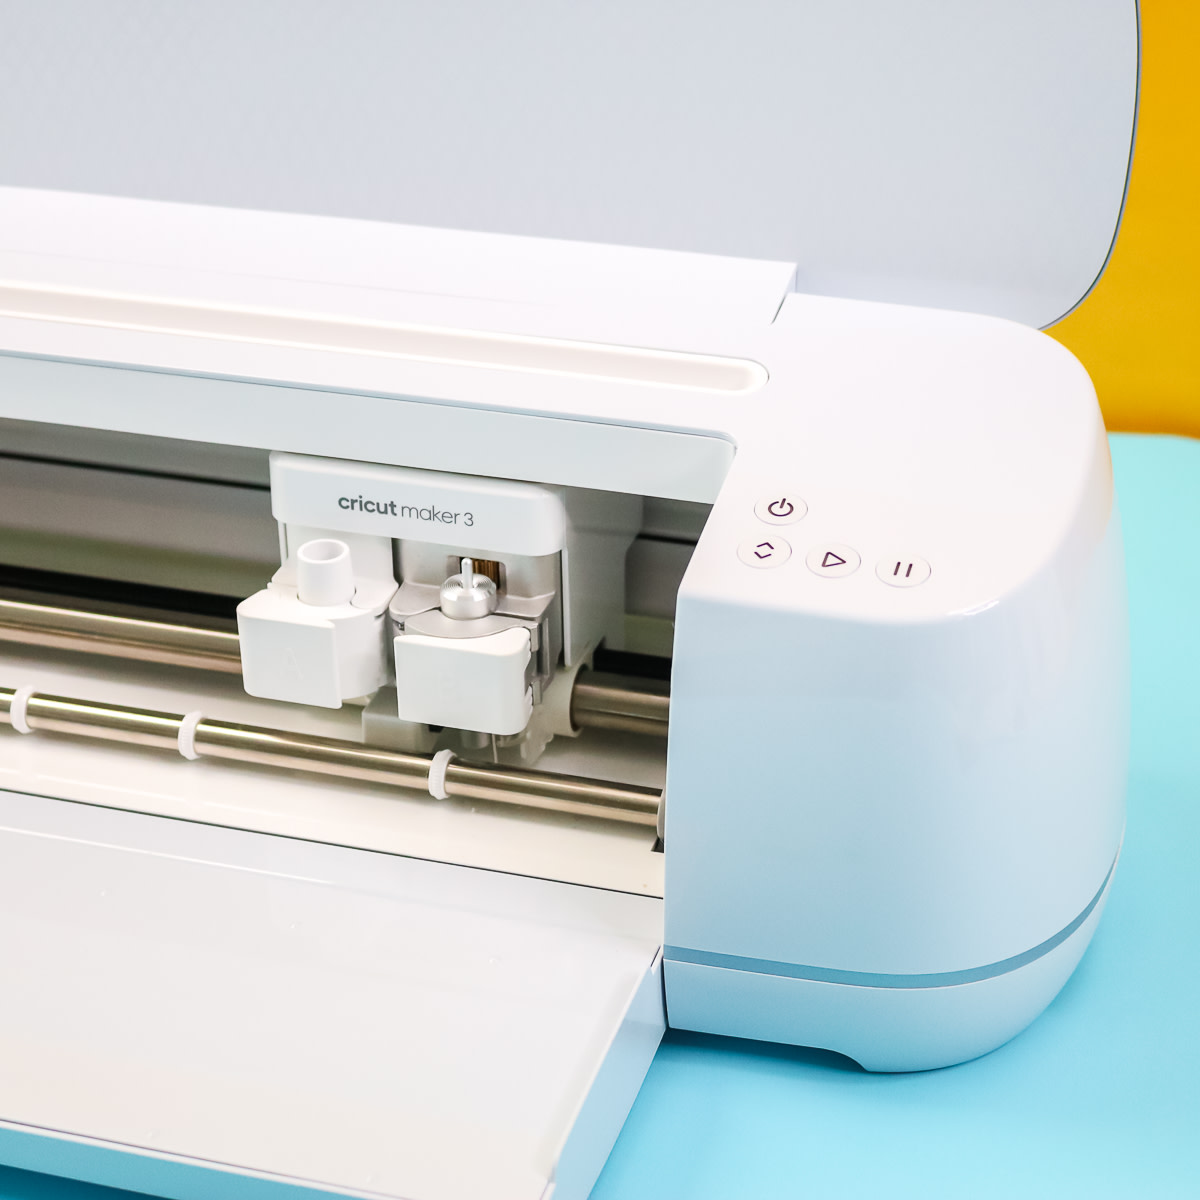 The buttons are actually the same as the Cricut Maker with a new look!